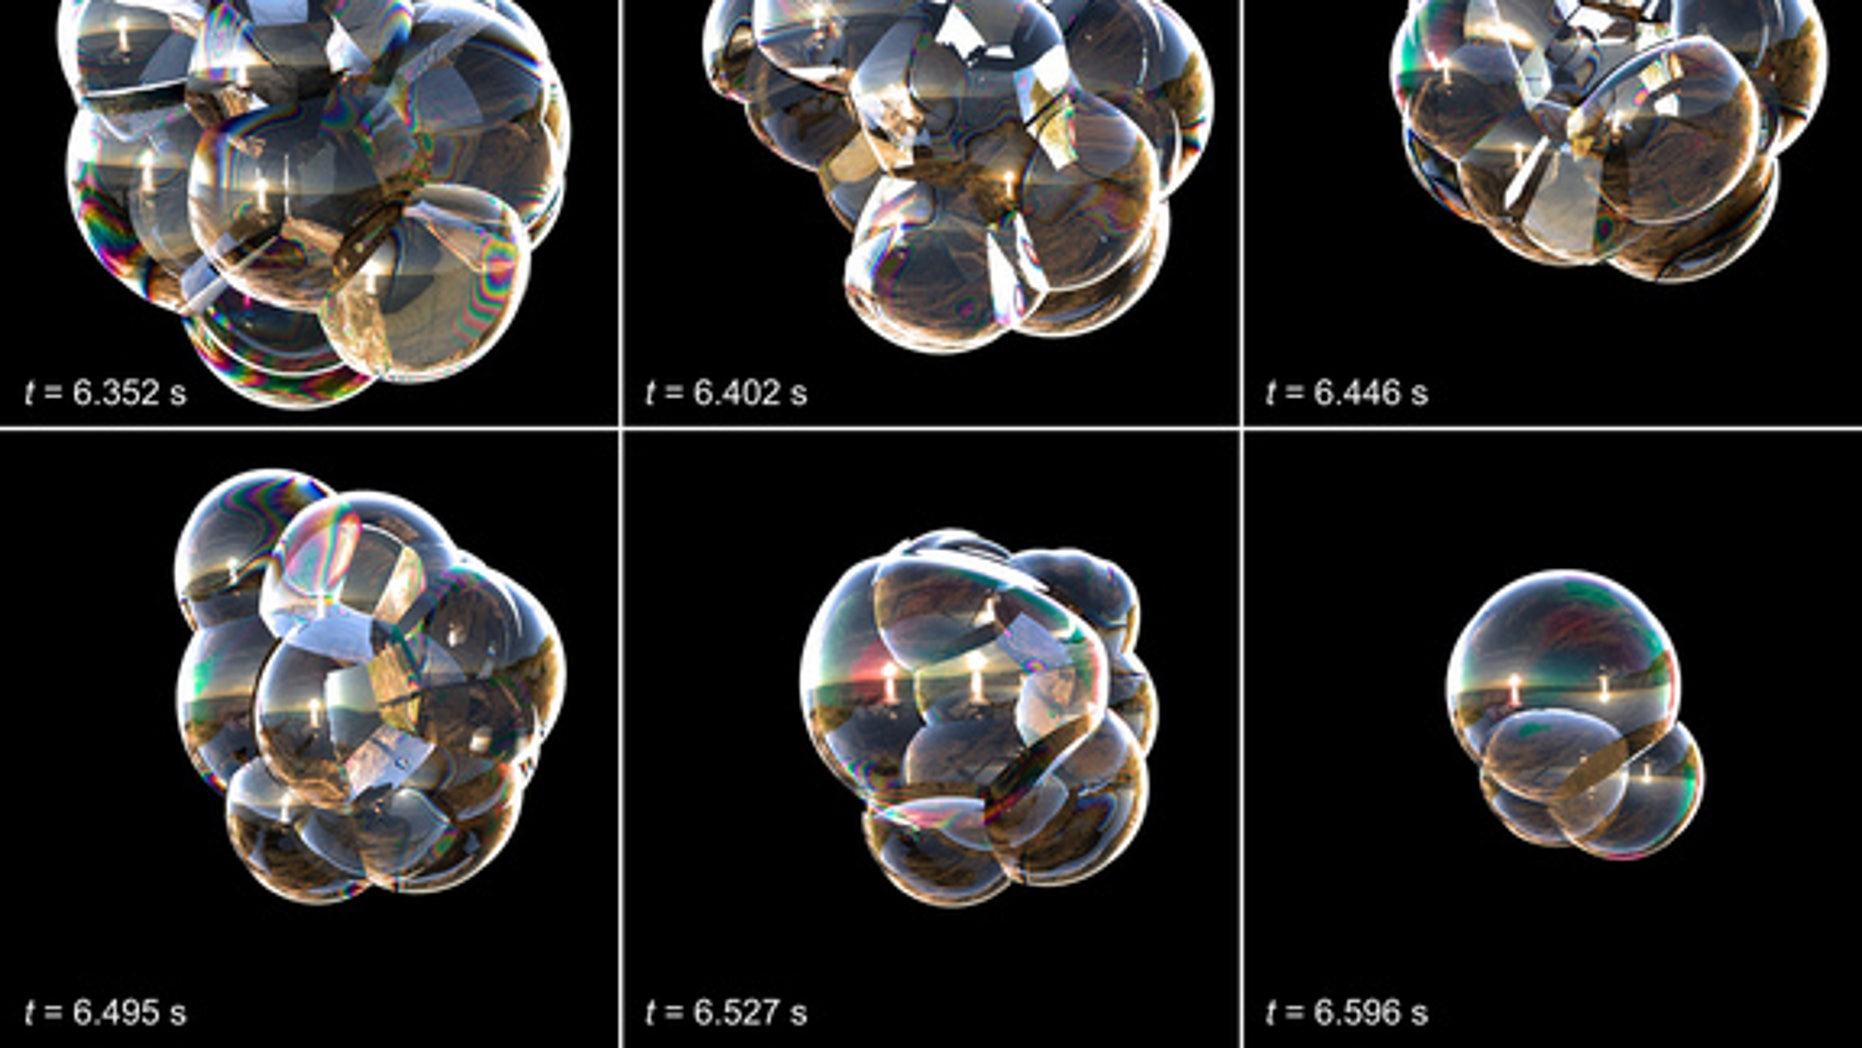 Snapshots of soap-bubble clusters that researchers used to study the dynamic behavior of foam.